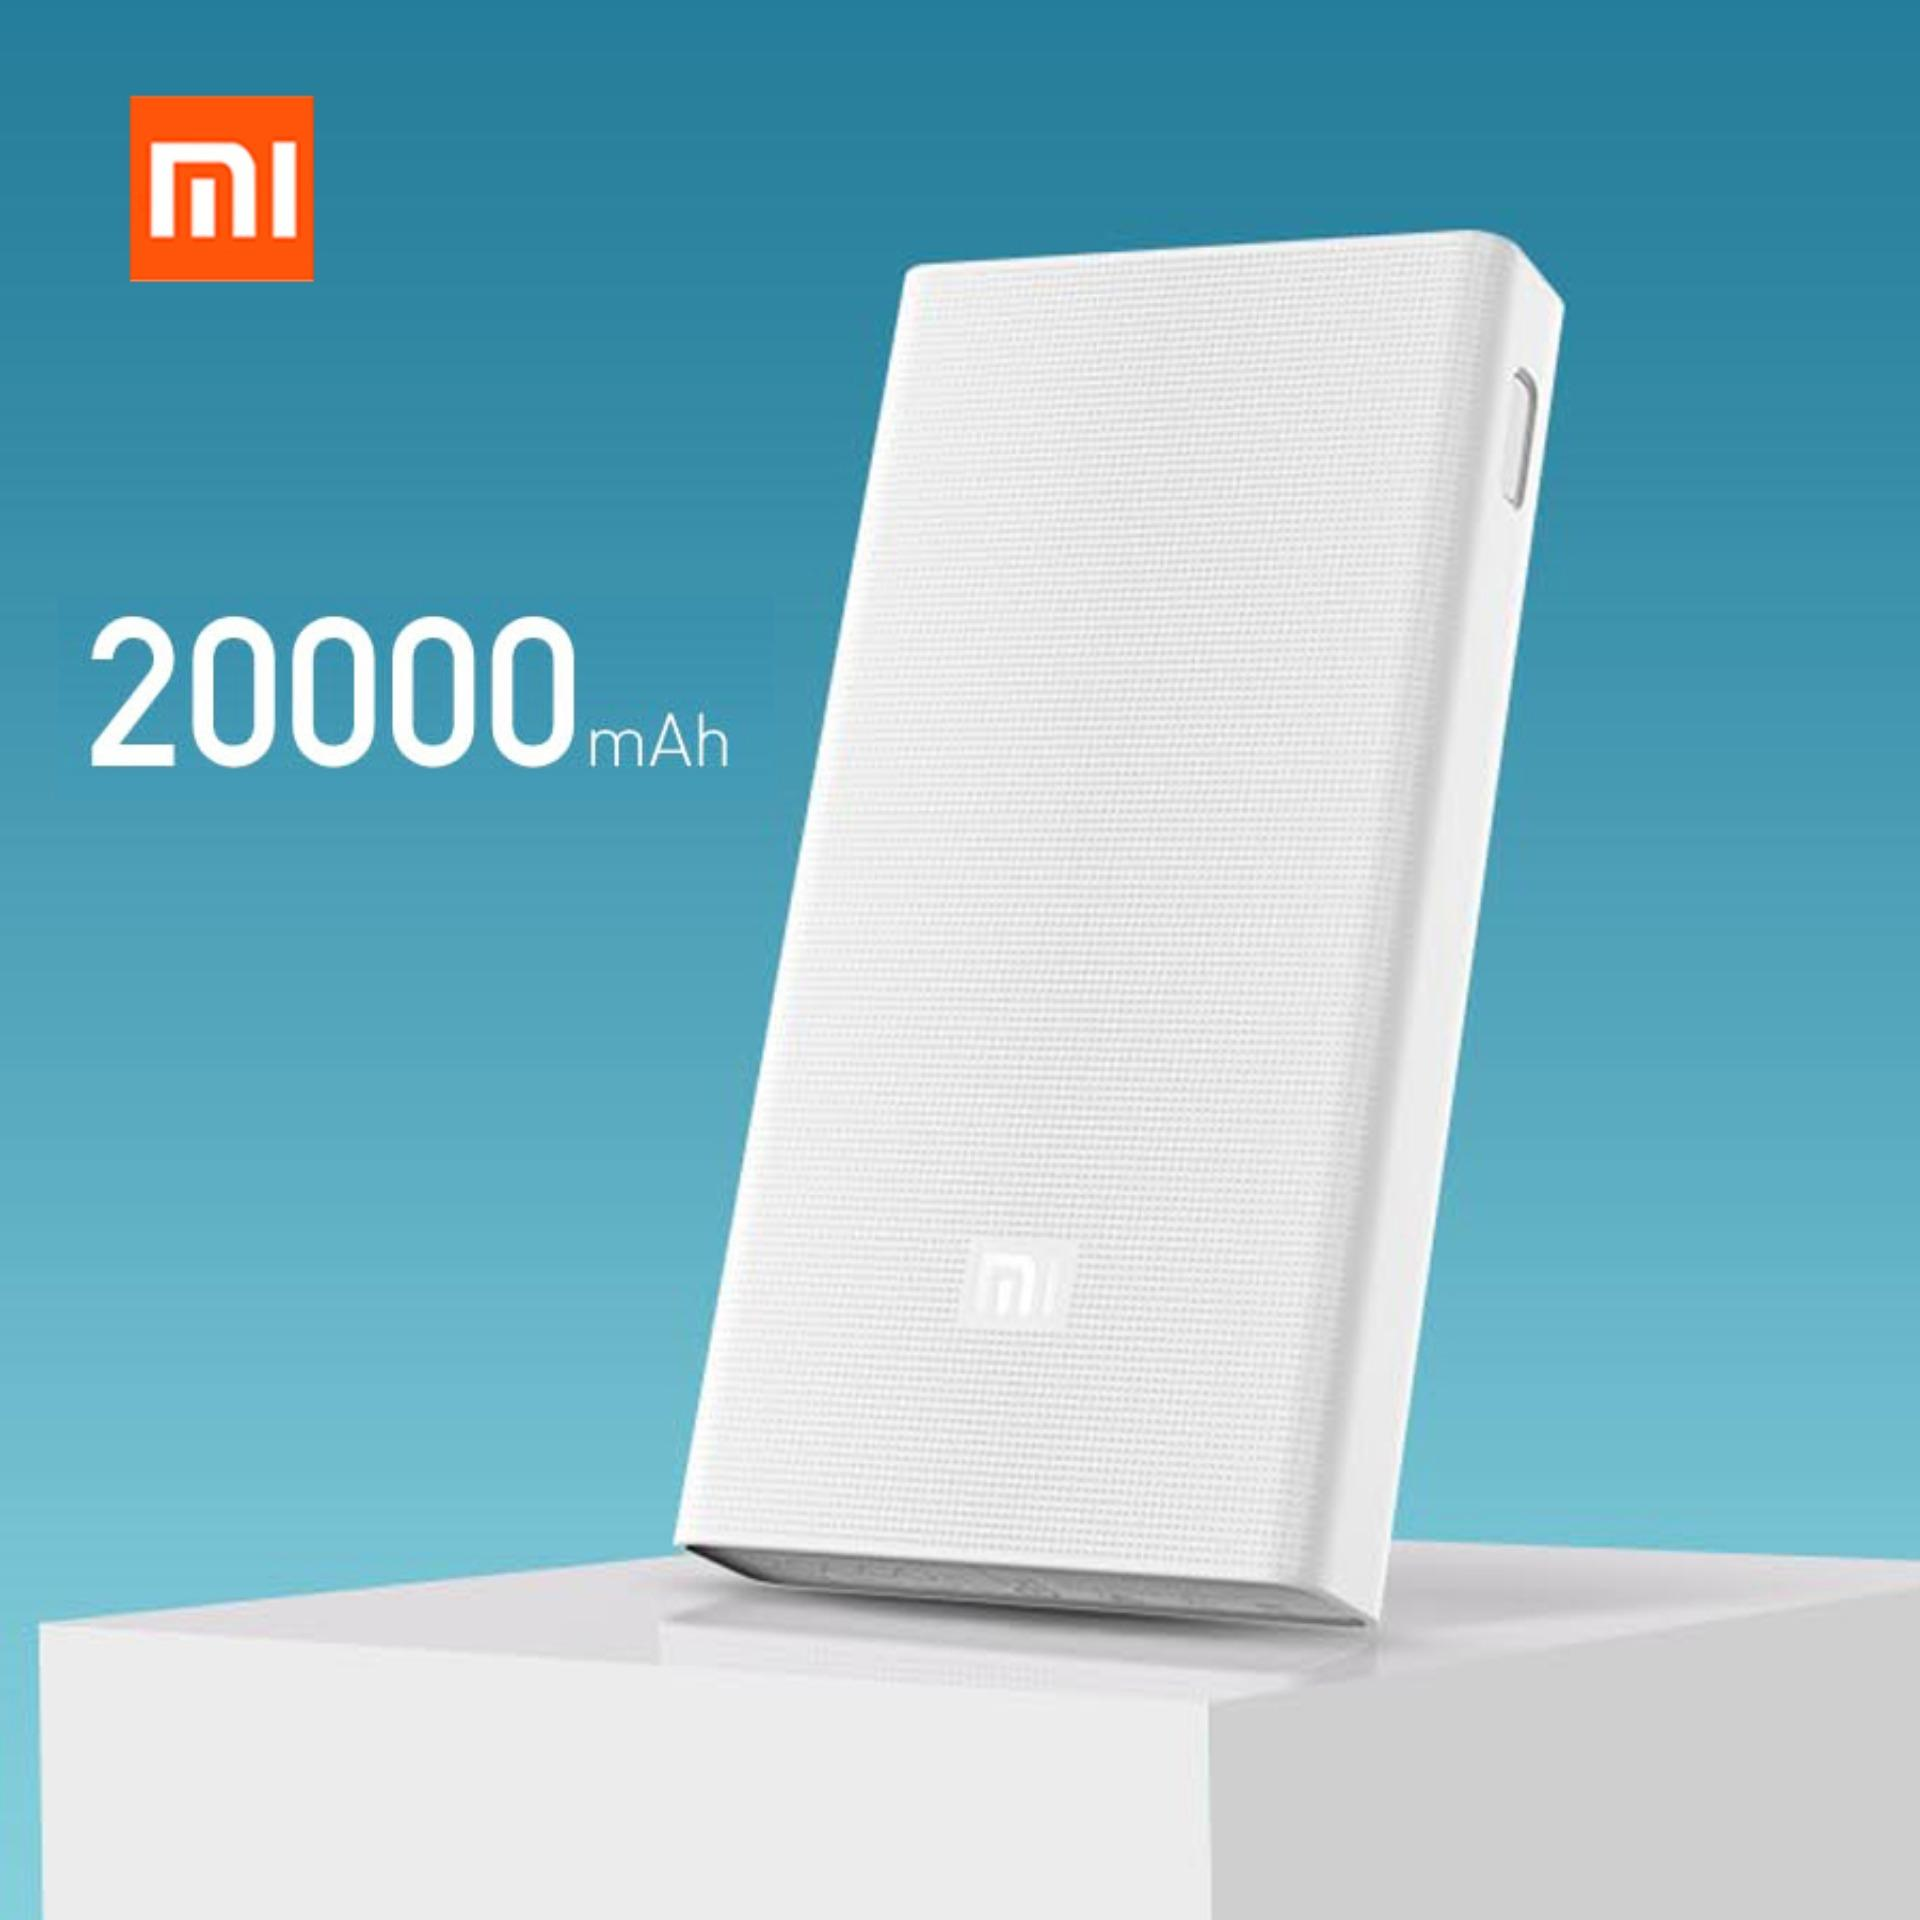 Xiaomi Mi Power Bank 20.000mAh 2C Two-way Quick Charge 3.0 (New) - White